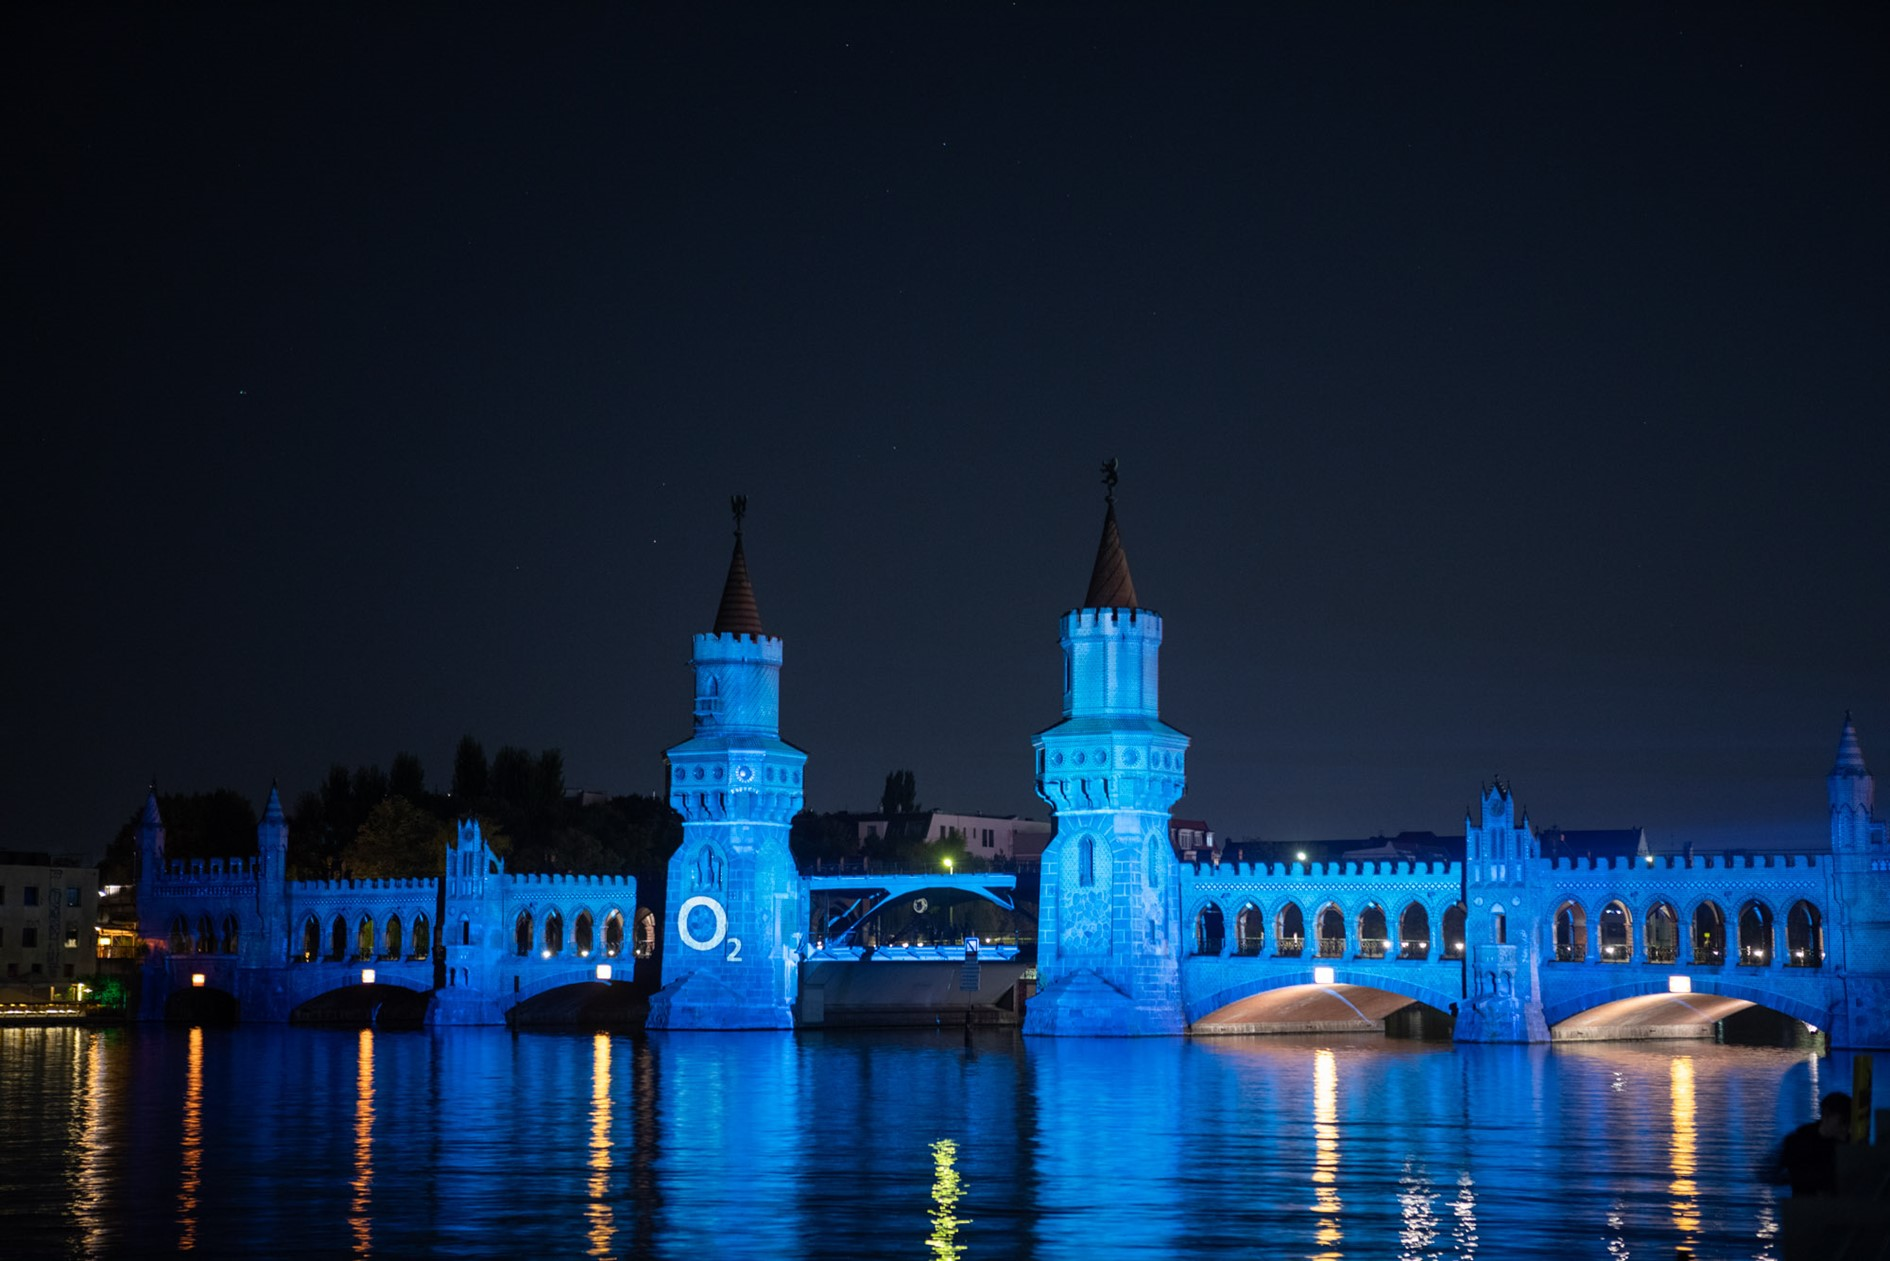 O2 Germany 5G-launch projection mapping Oberbaum Bridge by prio Event Management